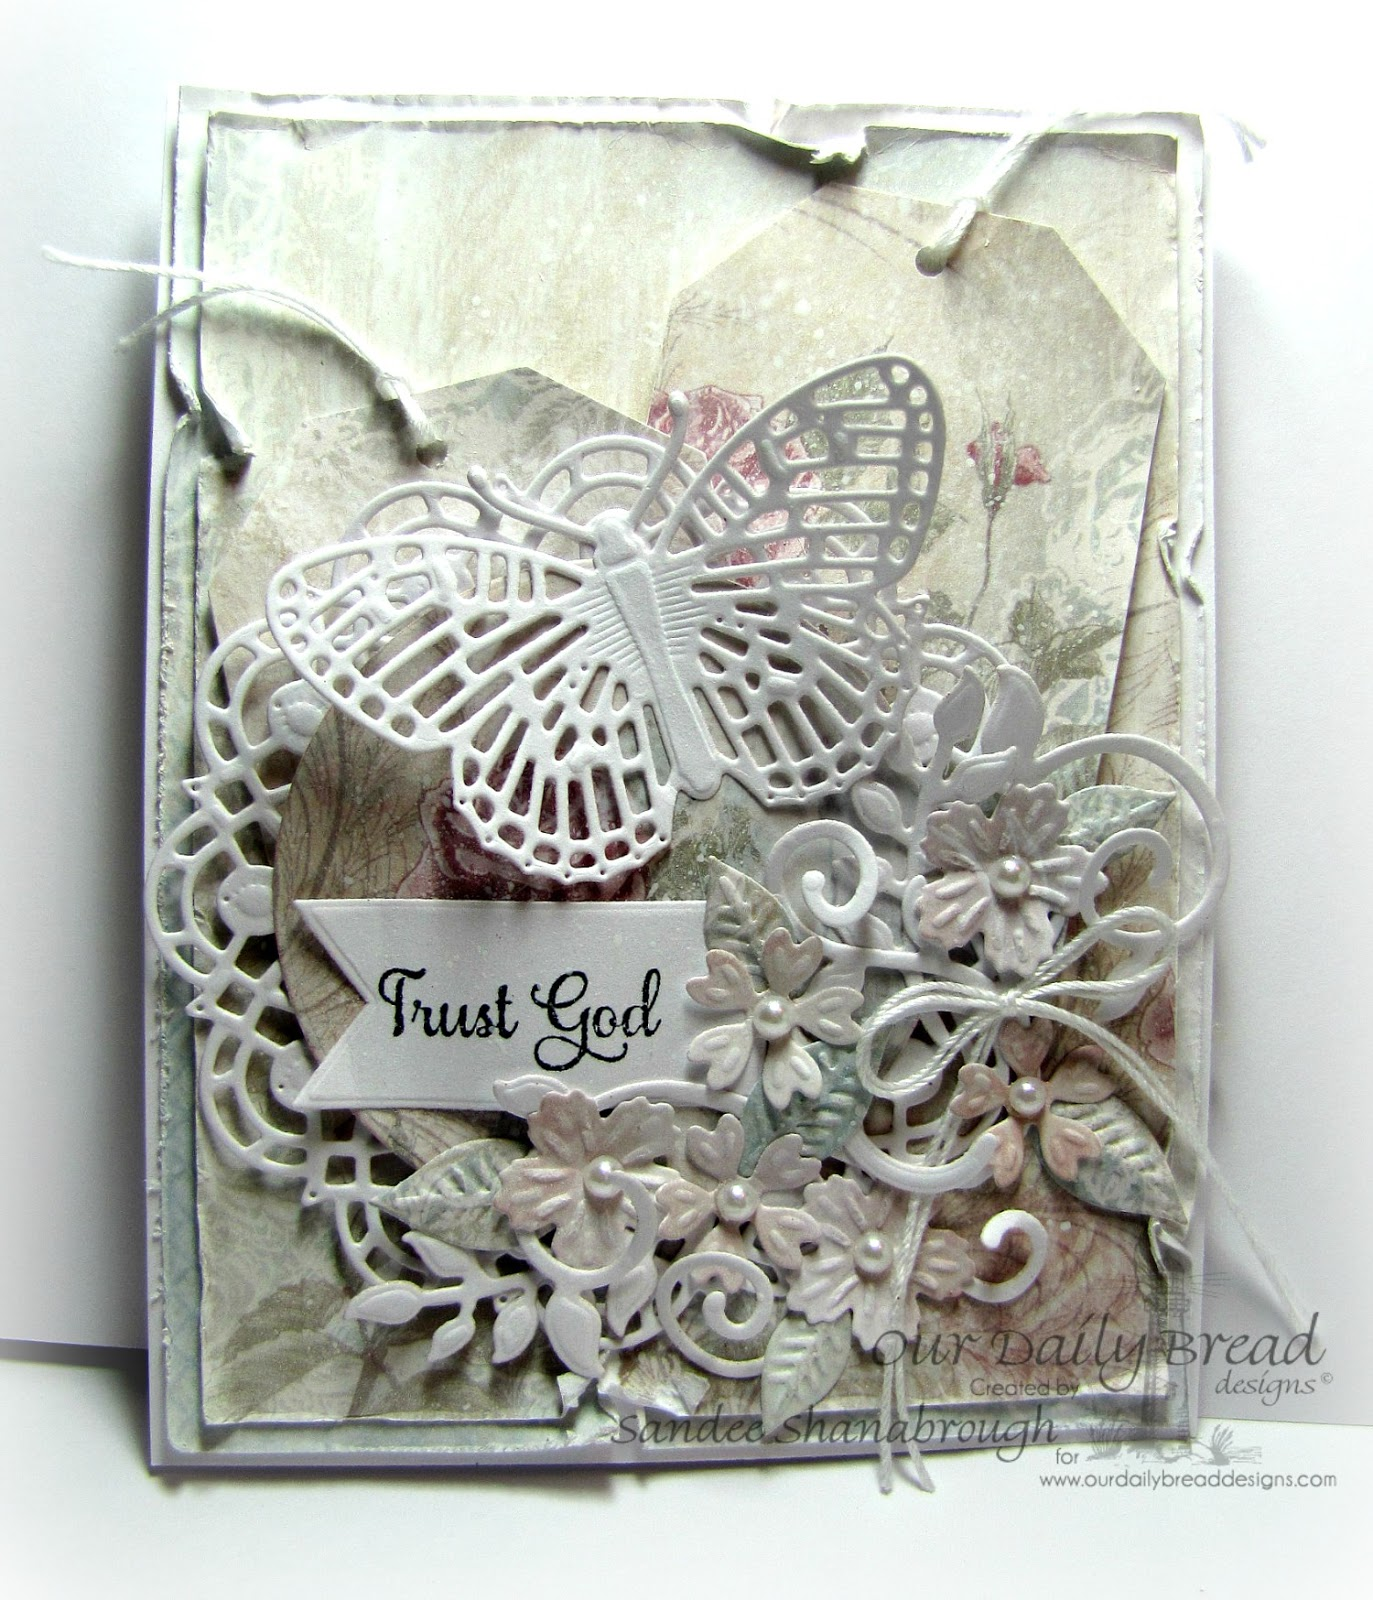 Stamps - Our Daily Bread Designs Belles Vignes, ODBD Custom Dies: Birds and Nest, Matting Circles, Fancy Foliage, Fancy Fritillary, Doily, Pennants, ODBD Shabby Rose Paper Collection